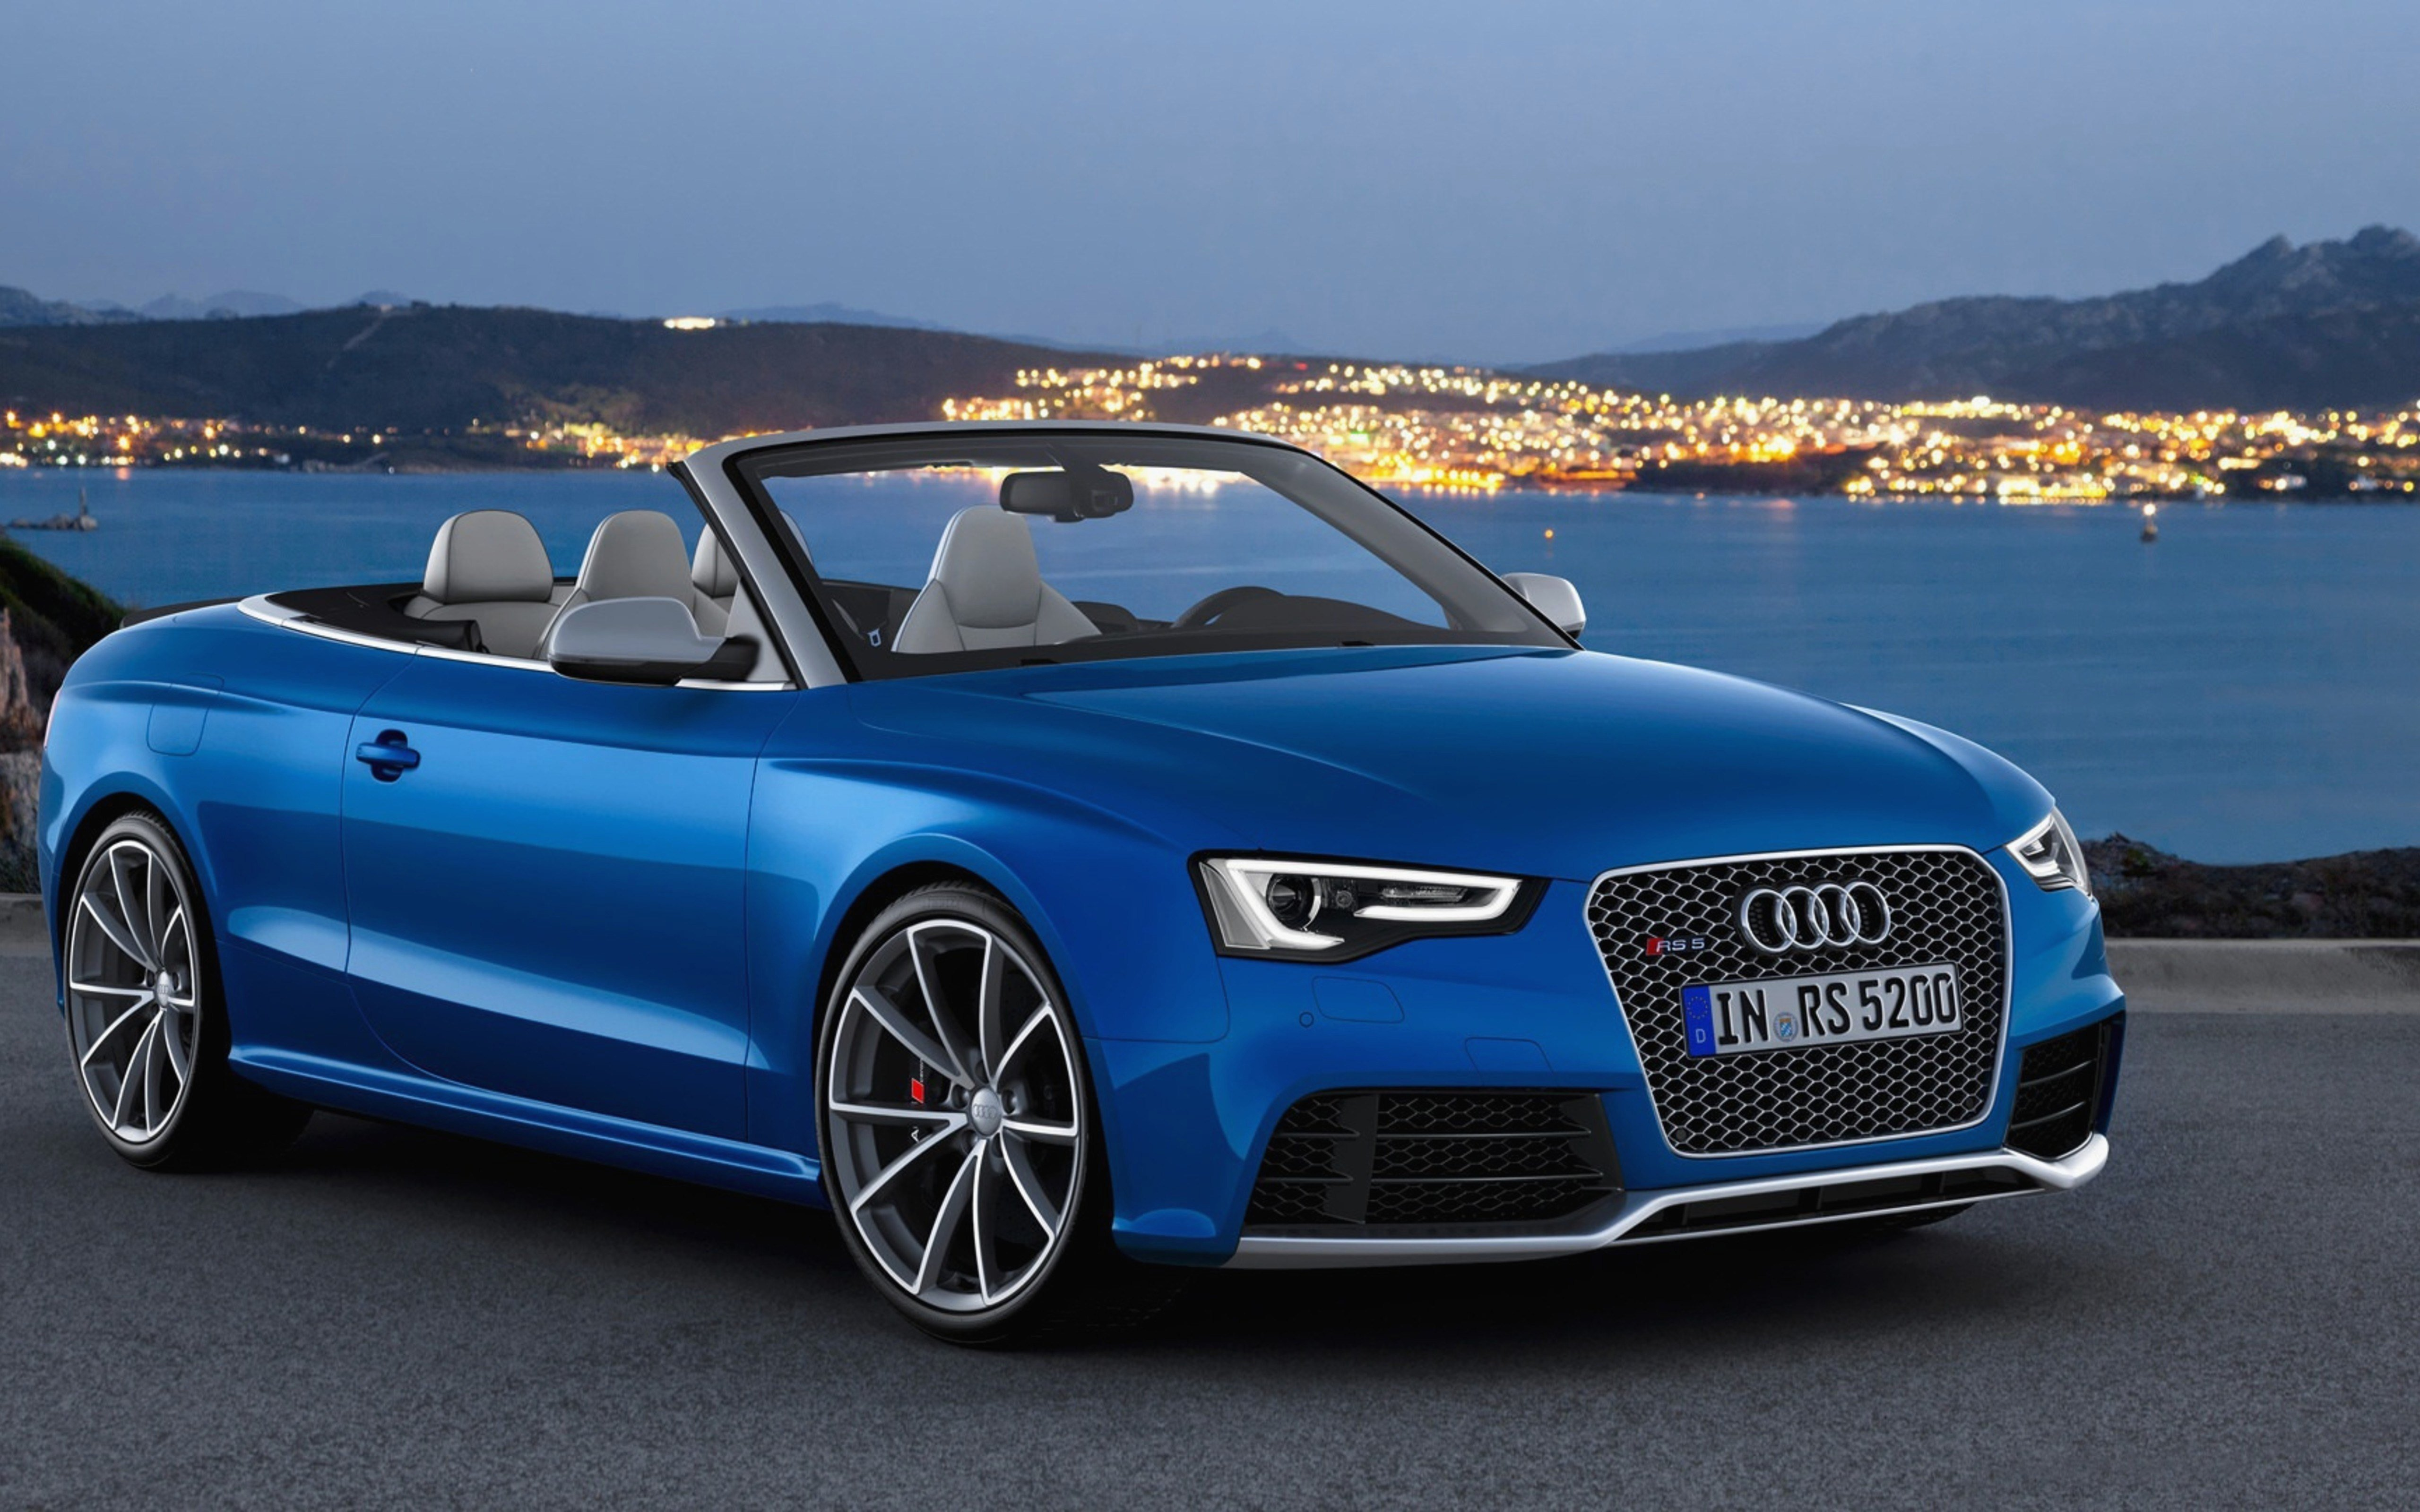 Latest New Audi Rsd Concept By Steel Drake Car Photos Illinois Free Download